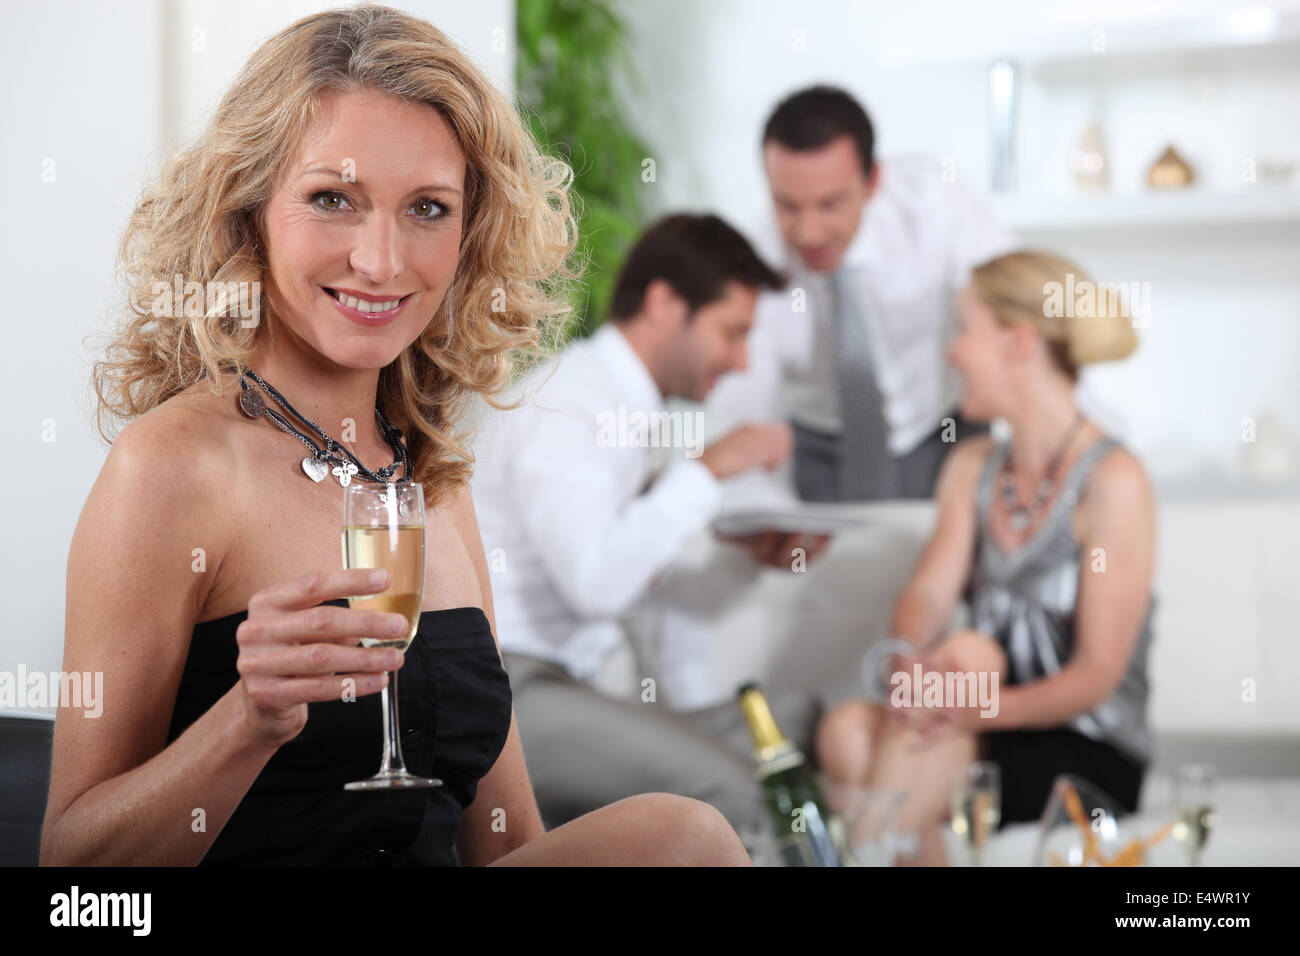 Aperitif with friends - Stock Image